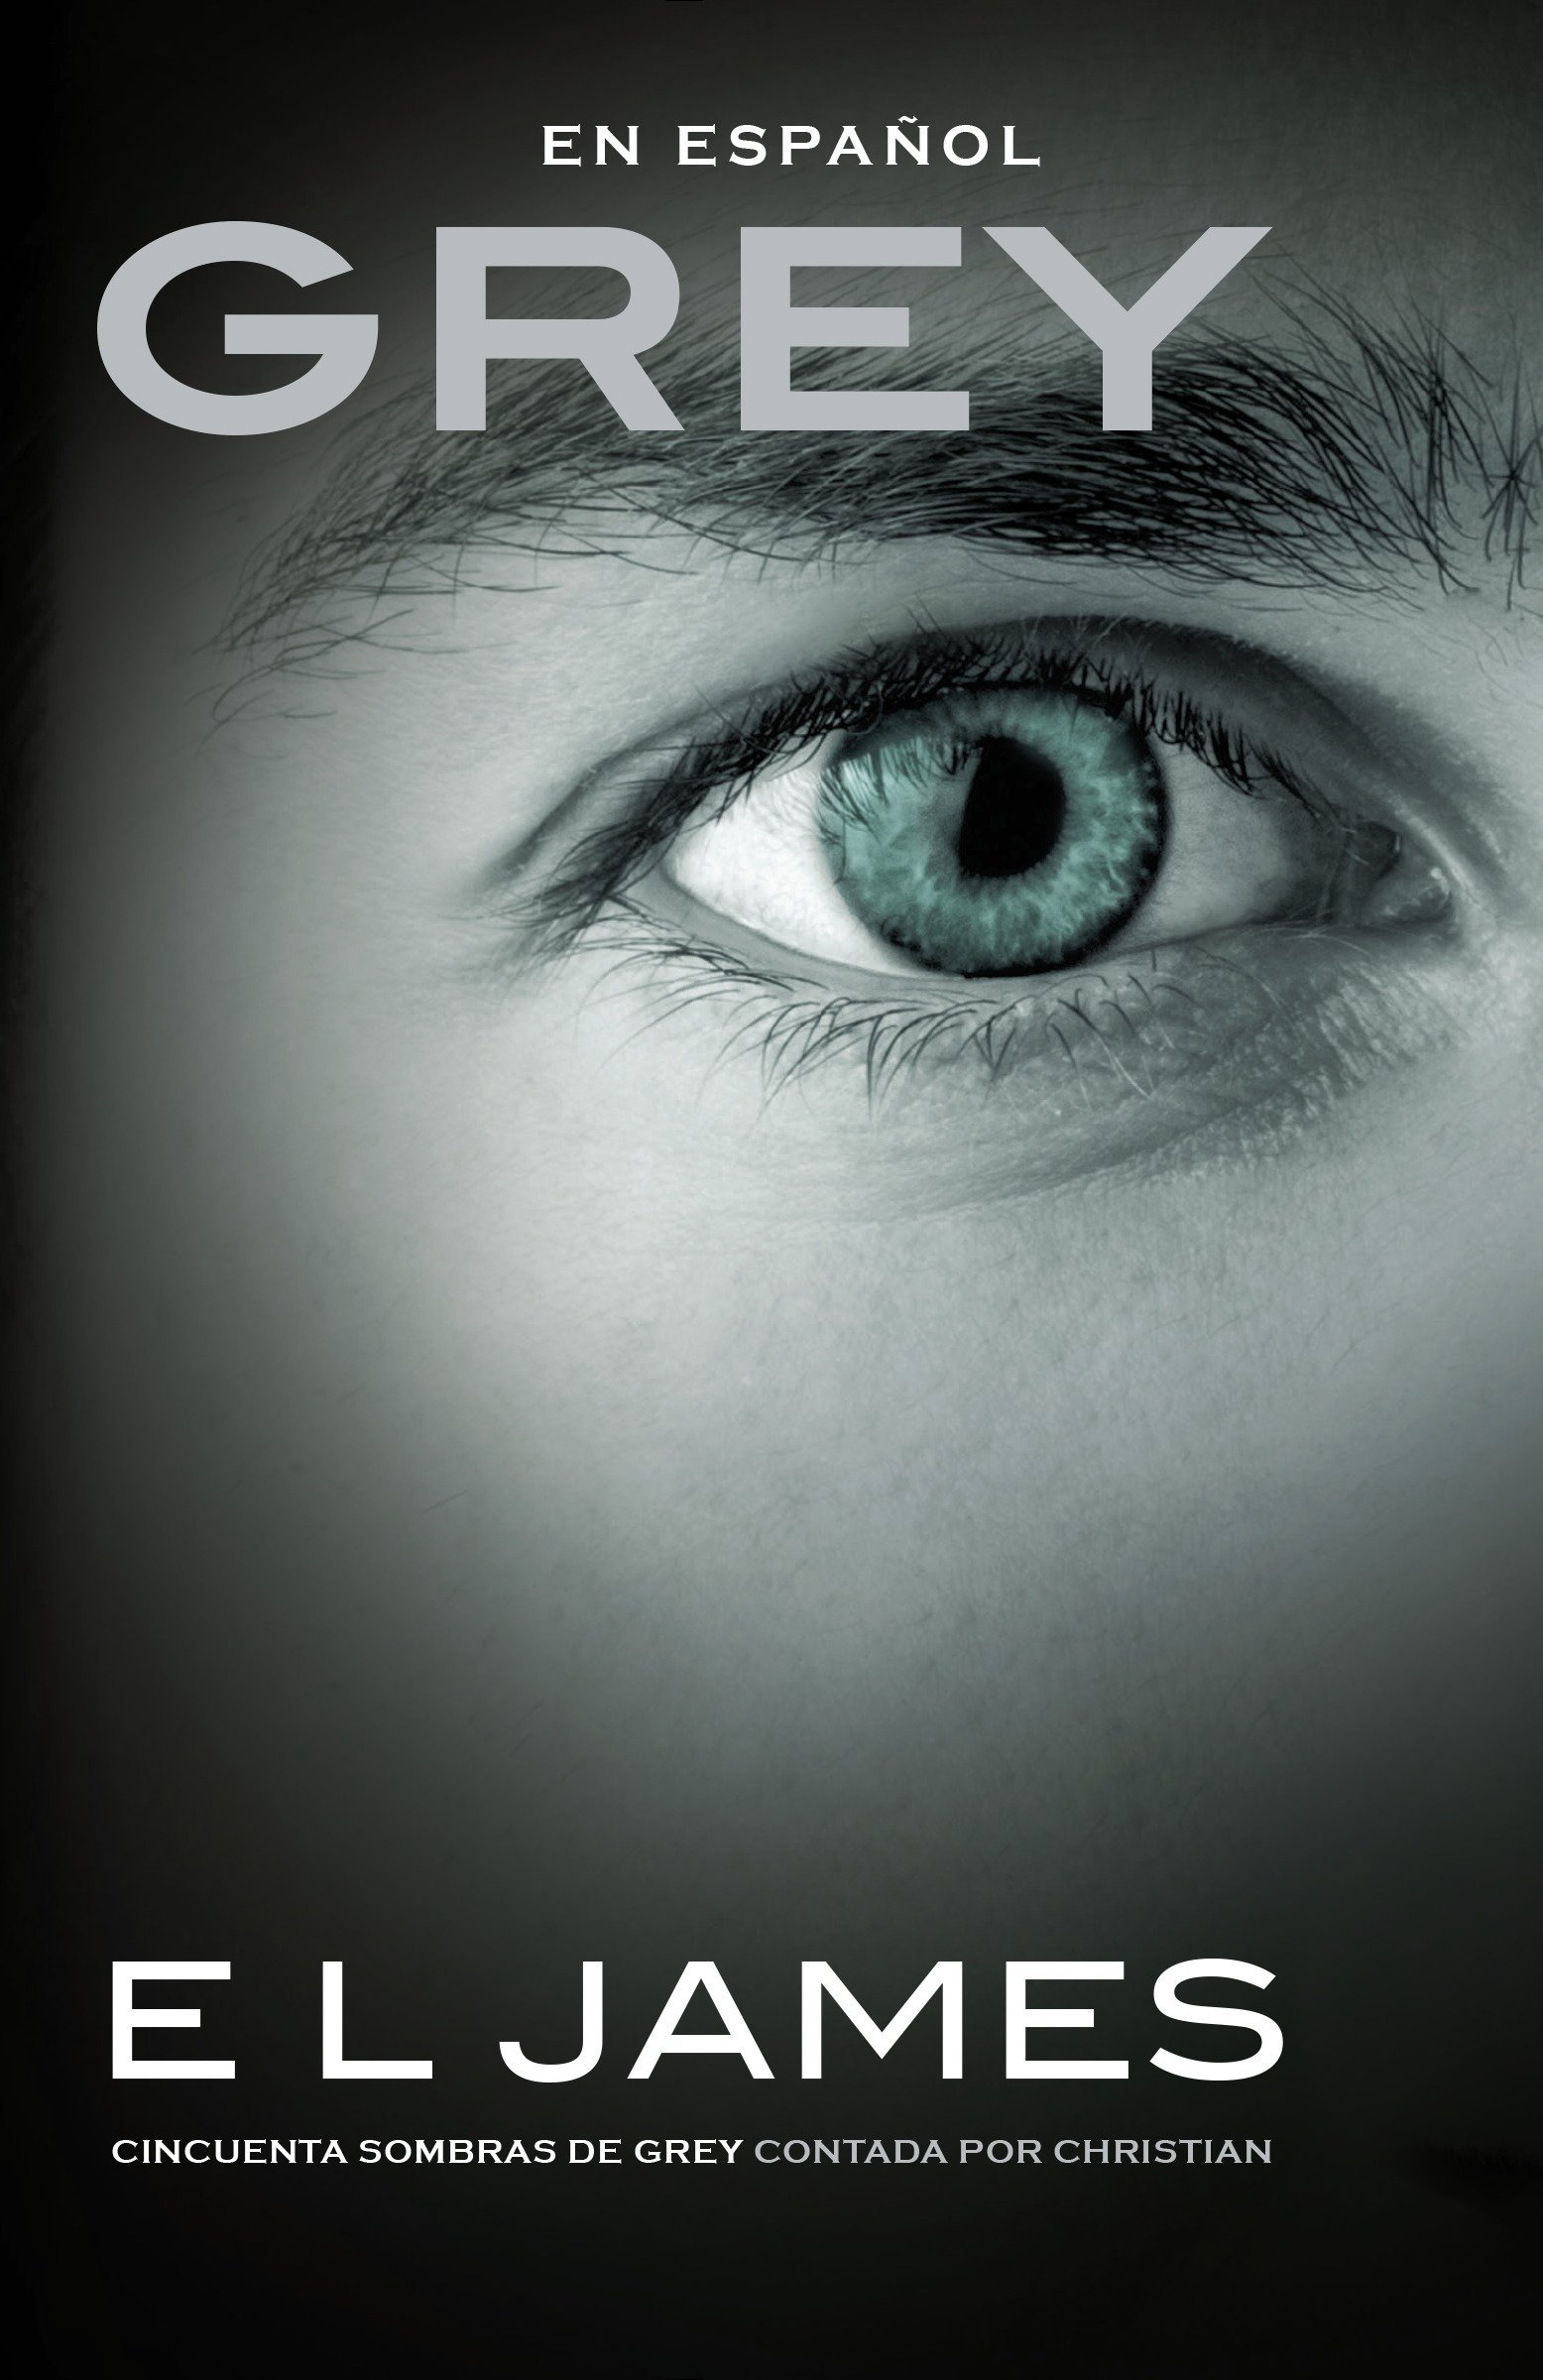 Grey Cincuenta Sombras De Grey Contada Por Christian Spanish Edition 9781101971543 James E L Books